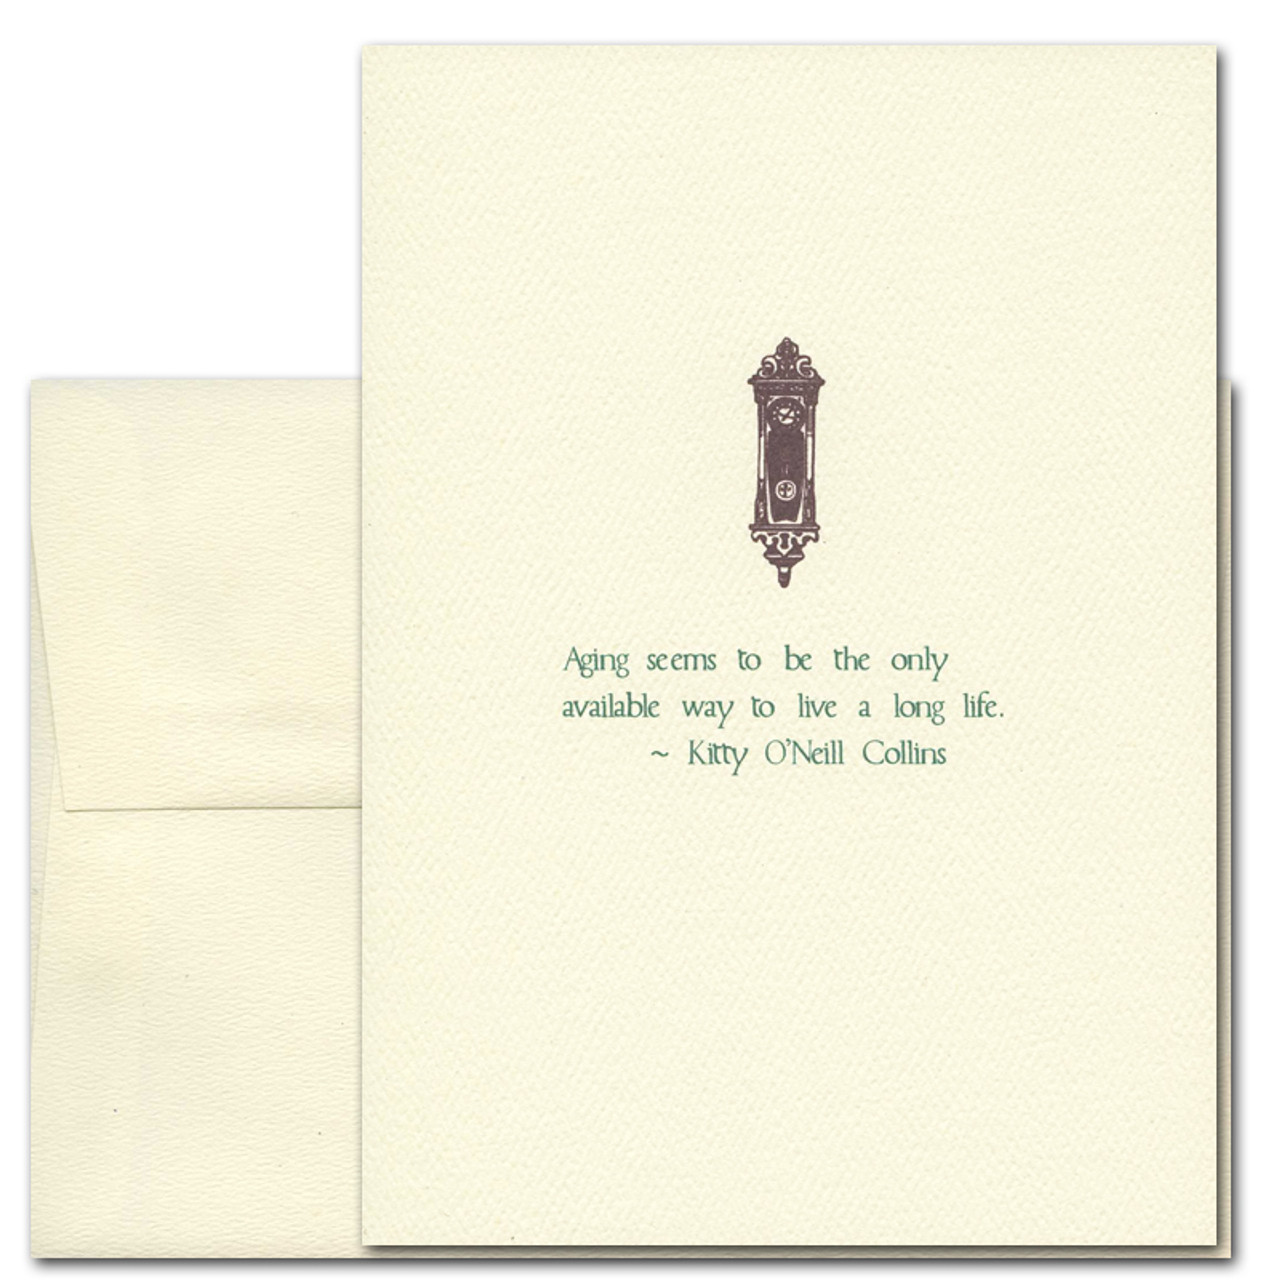 """Quotation Card """"Aging: Collins"""" Cover shows a vintage style grandmother clock with a quote from Kitty O'Neill Collins reading: """"Aging seems to be the only available way to live a long life."""""""